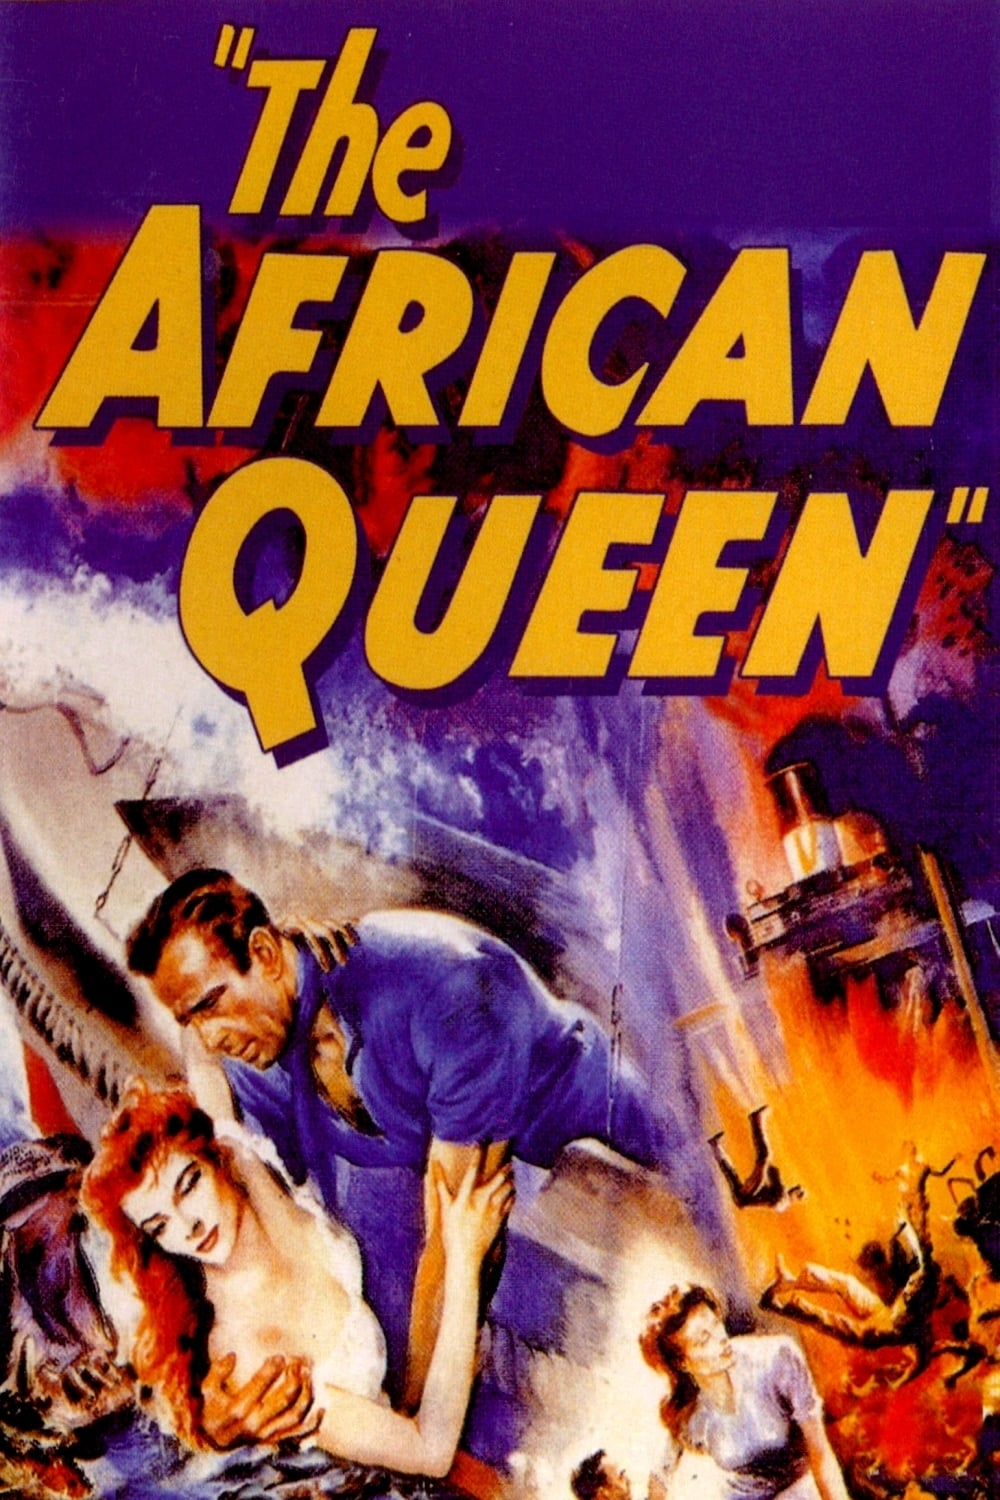 film reviews on the african queen Despite being 50 years old, there is still something refreshing about watching the african queen set at the outbreak of world war i, humphrey bogart stars as.